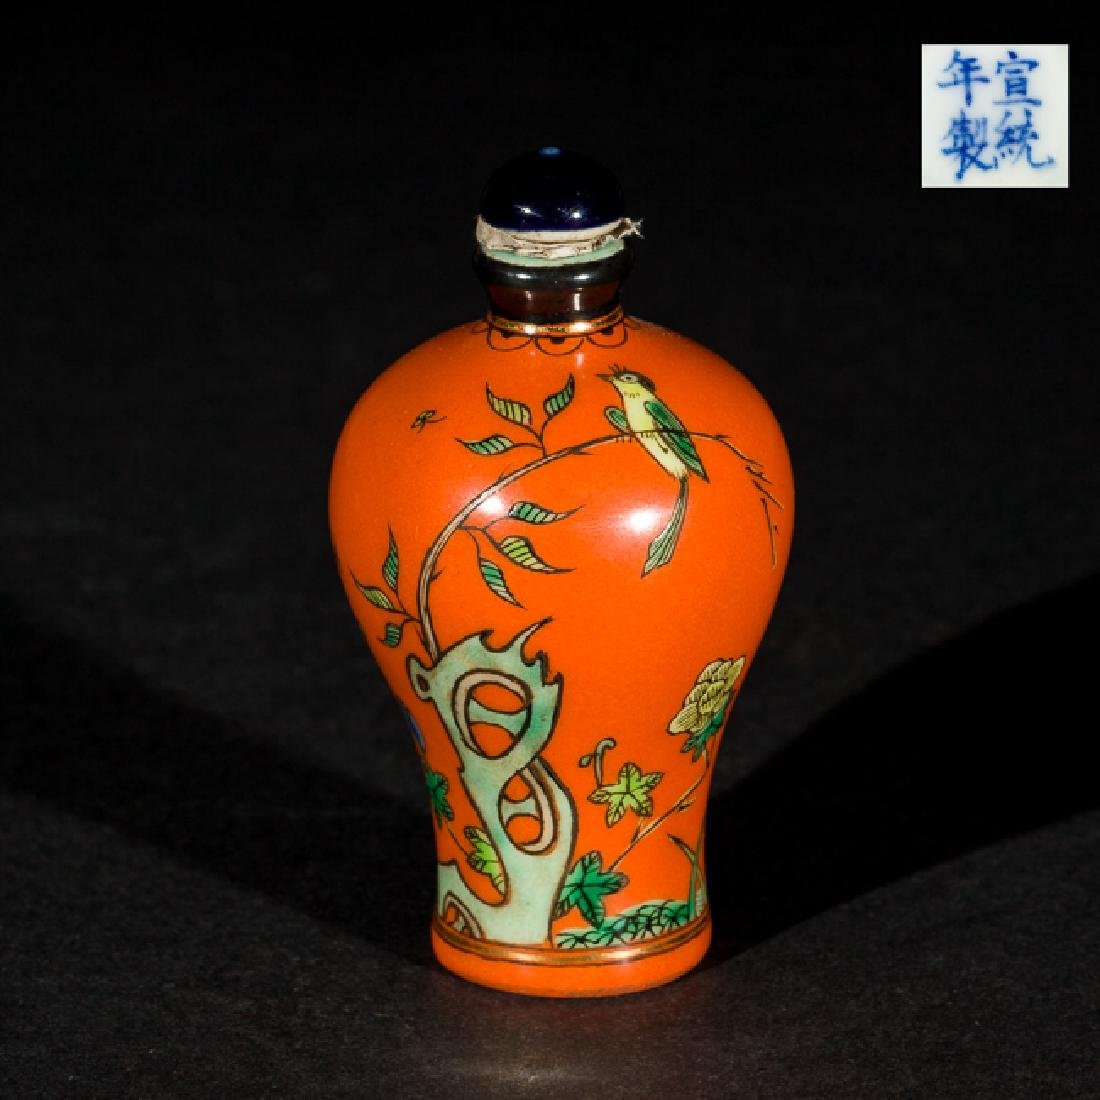 Antique Porcelain Snuff Bottle, Early 20th Century